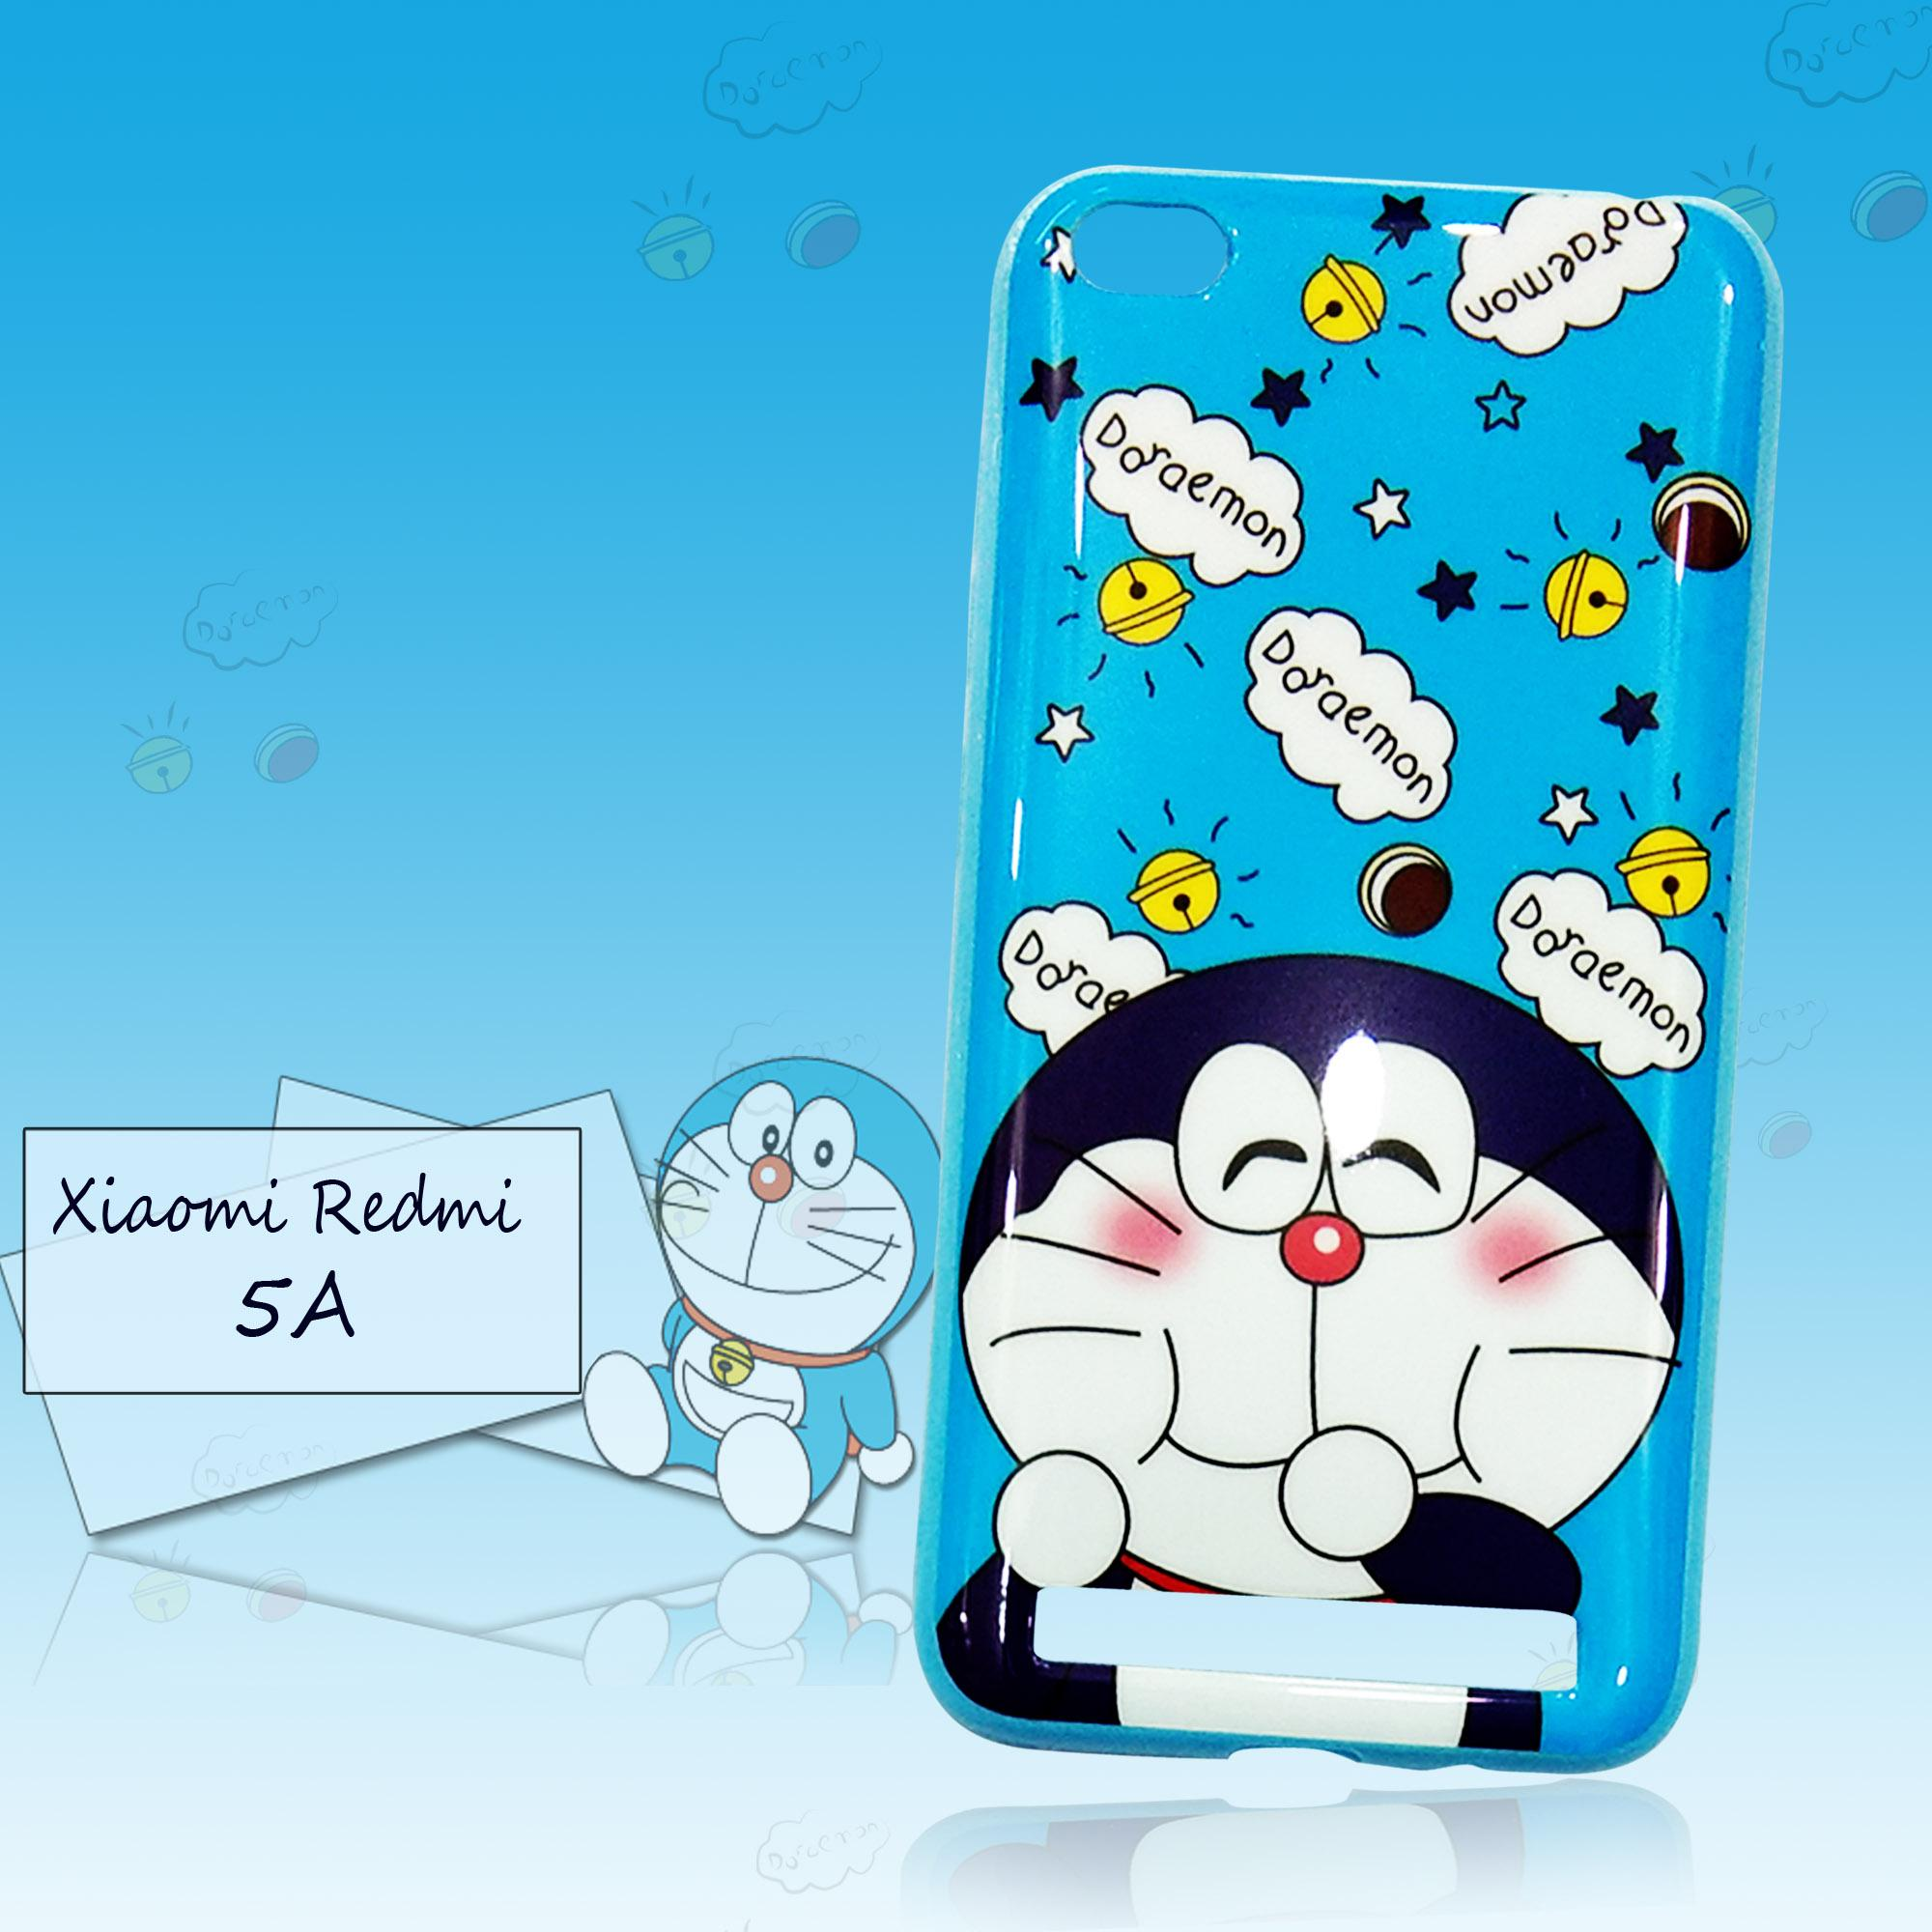 Marintri Case Xiaomi Redmi 5A - New Doraemon Stylish